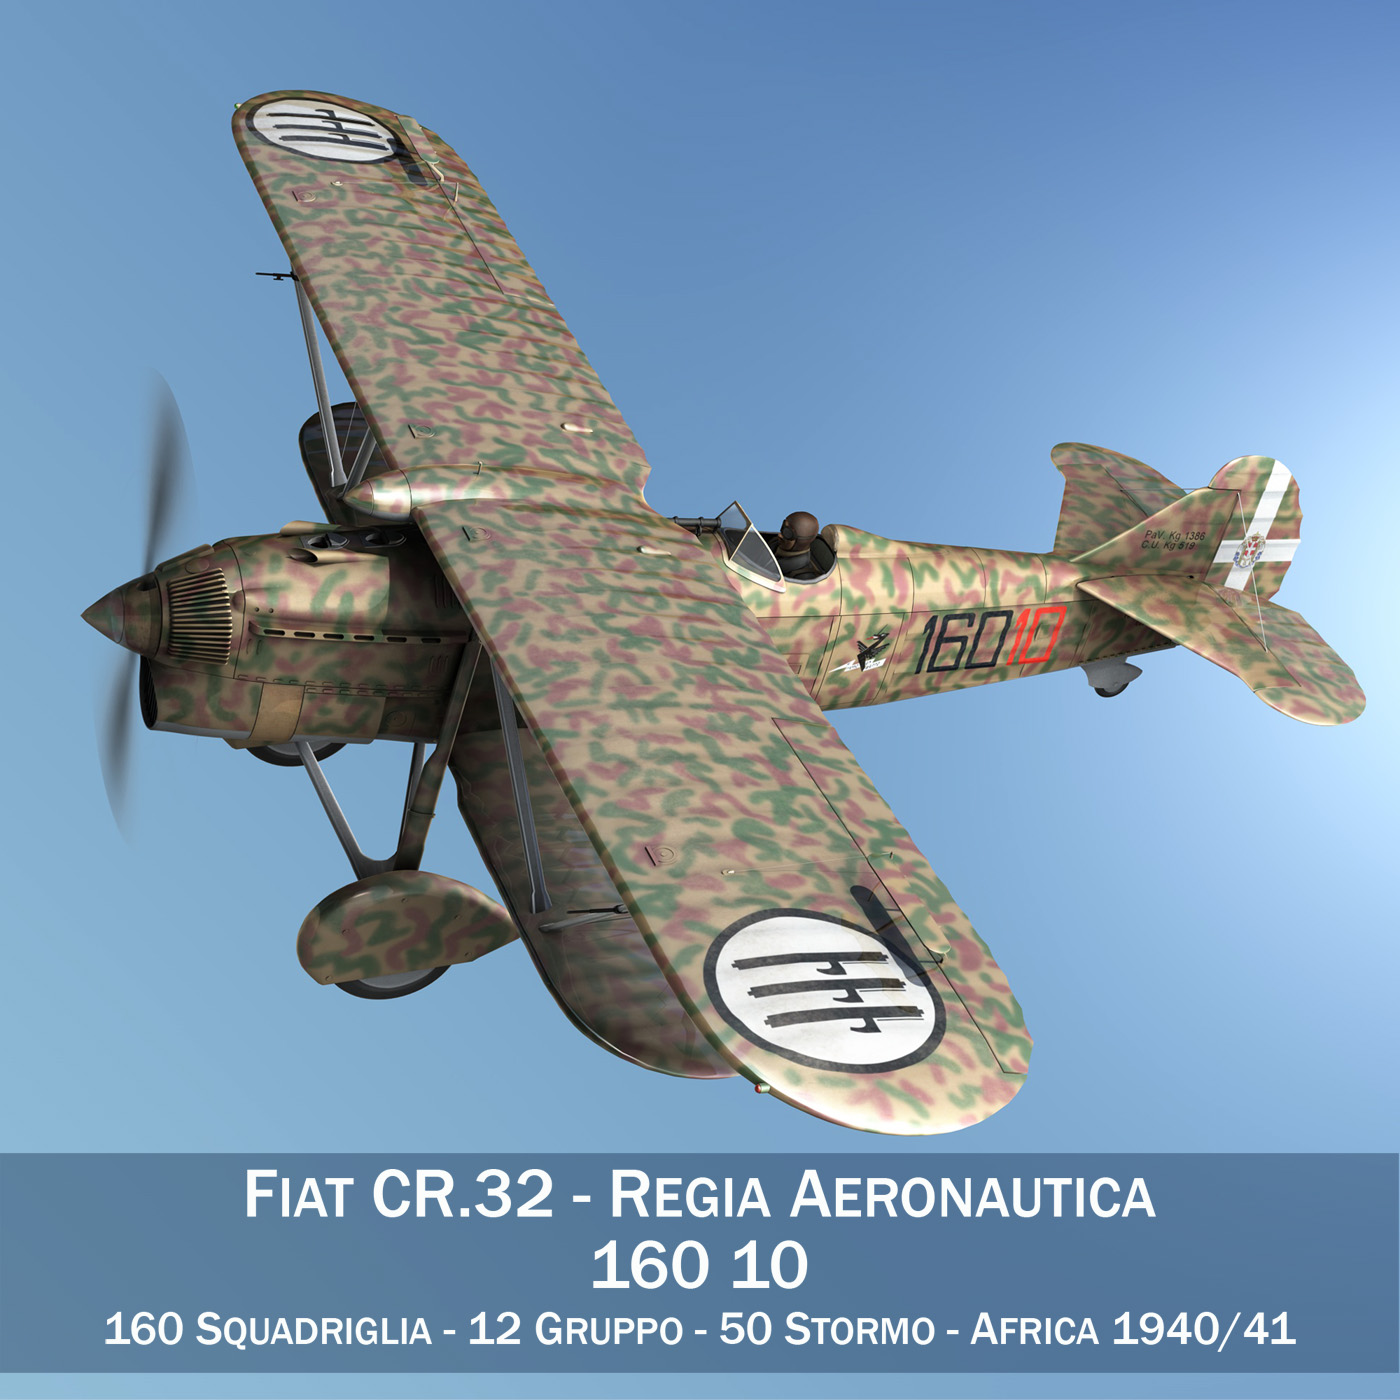 fiat cr.32 – italy airforce – 160 squadriglia 3d model fbx c4d lwo obj 268102